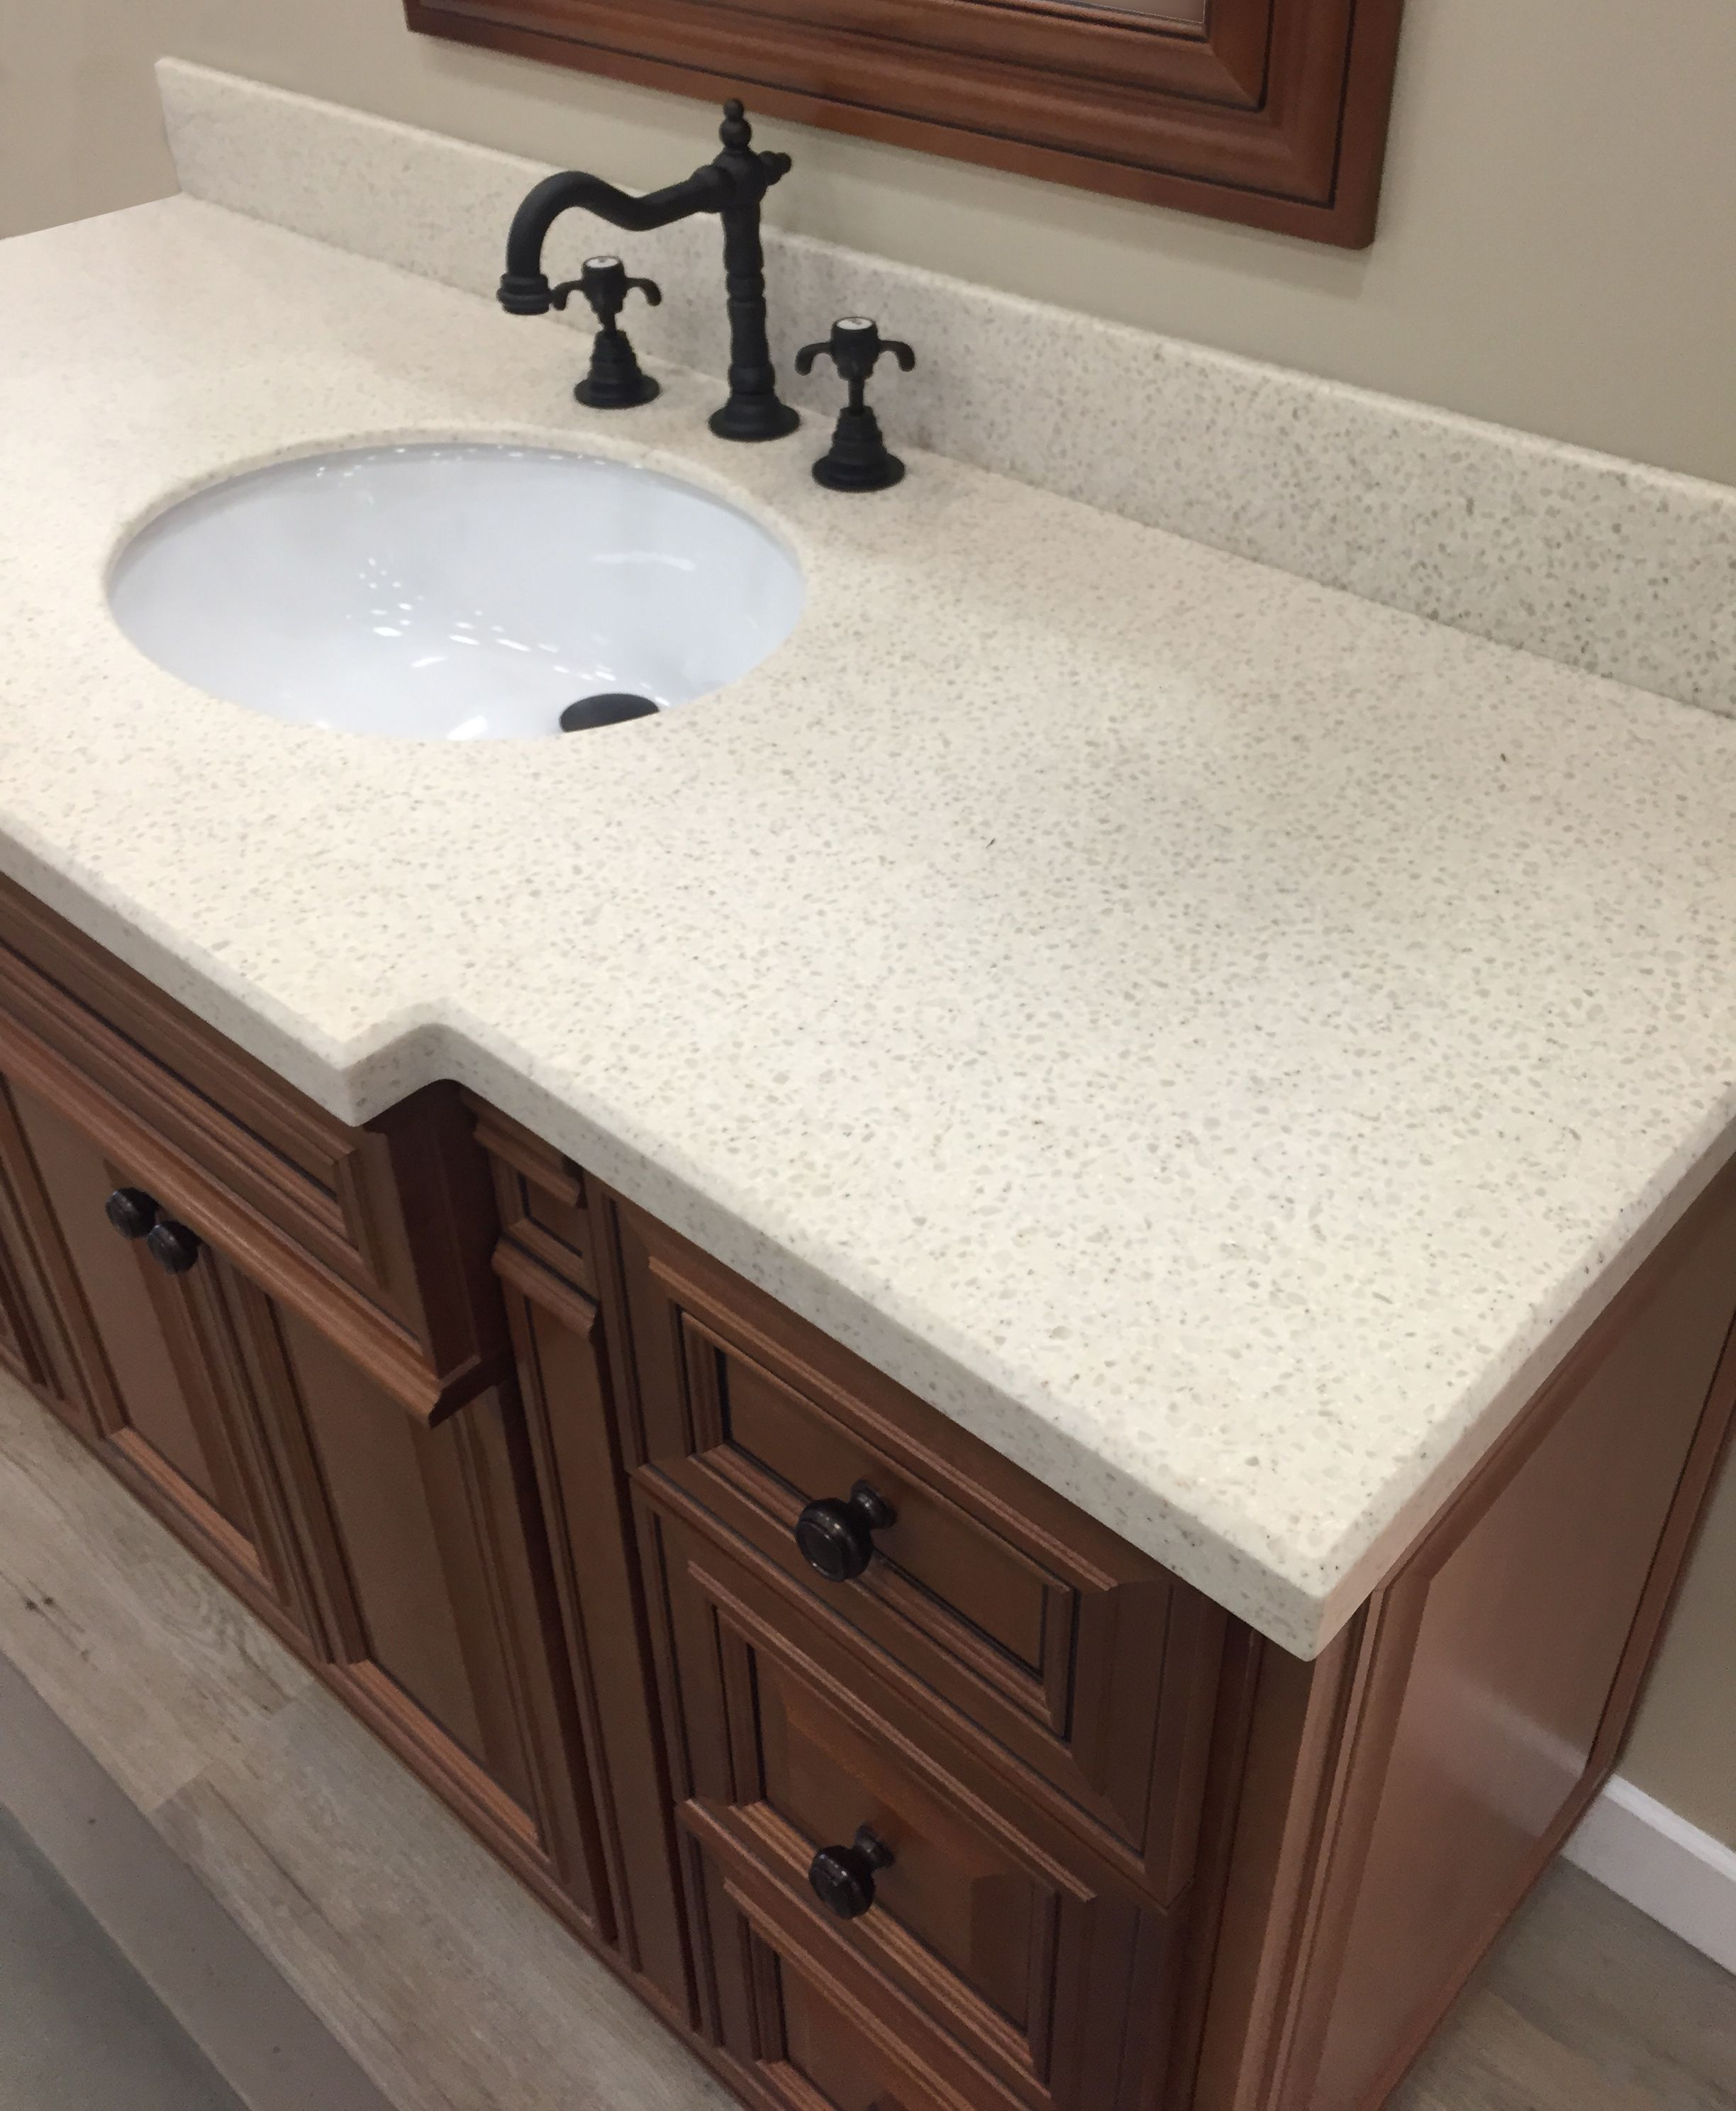 Pin By Us Marble Inc On Evercor Solid Surface Washbasin Design Solid Surface Vanity Top Wash Basin